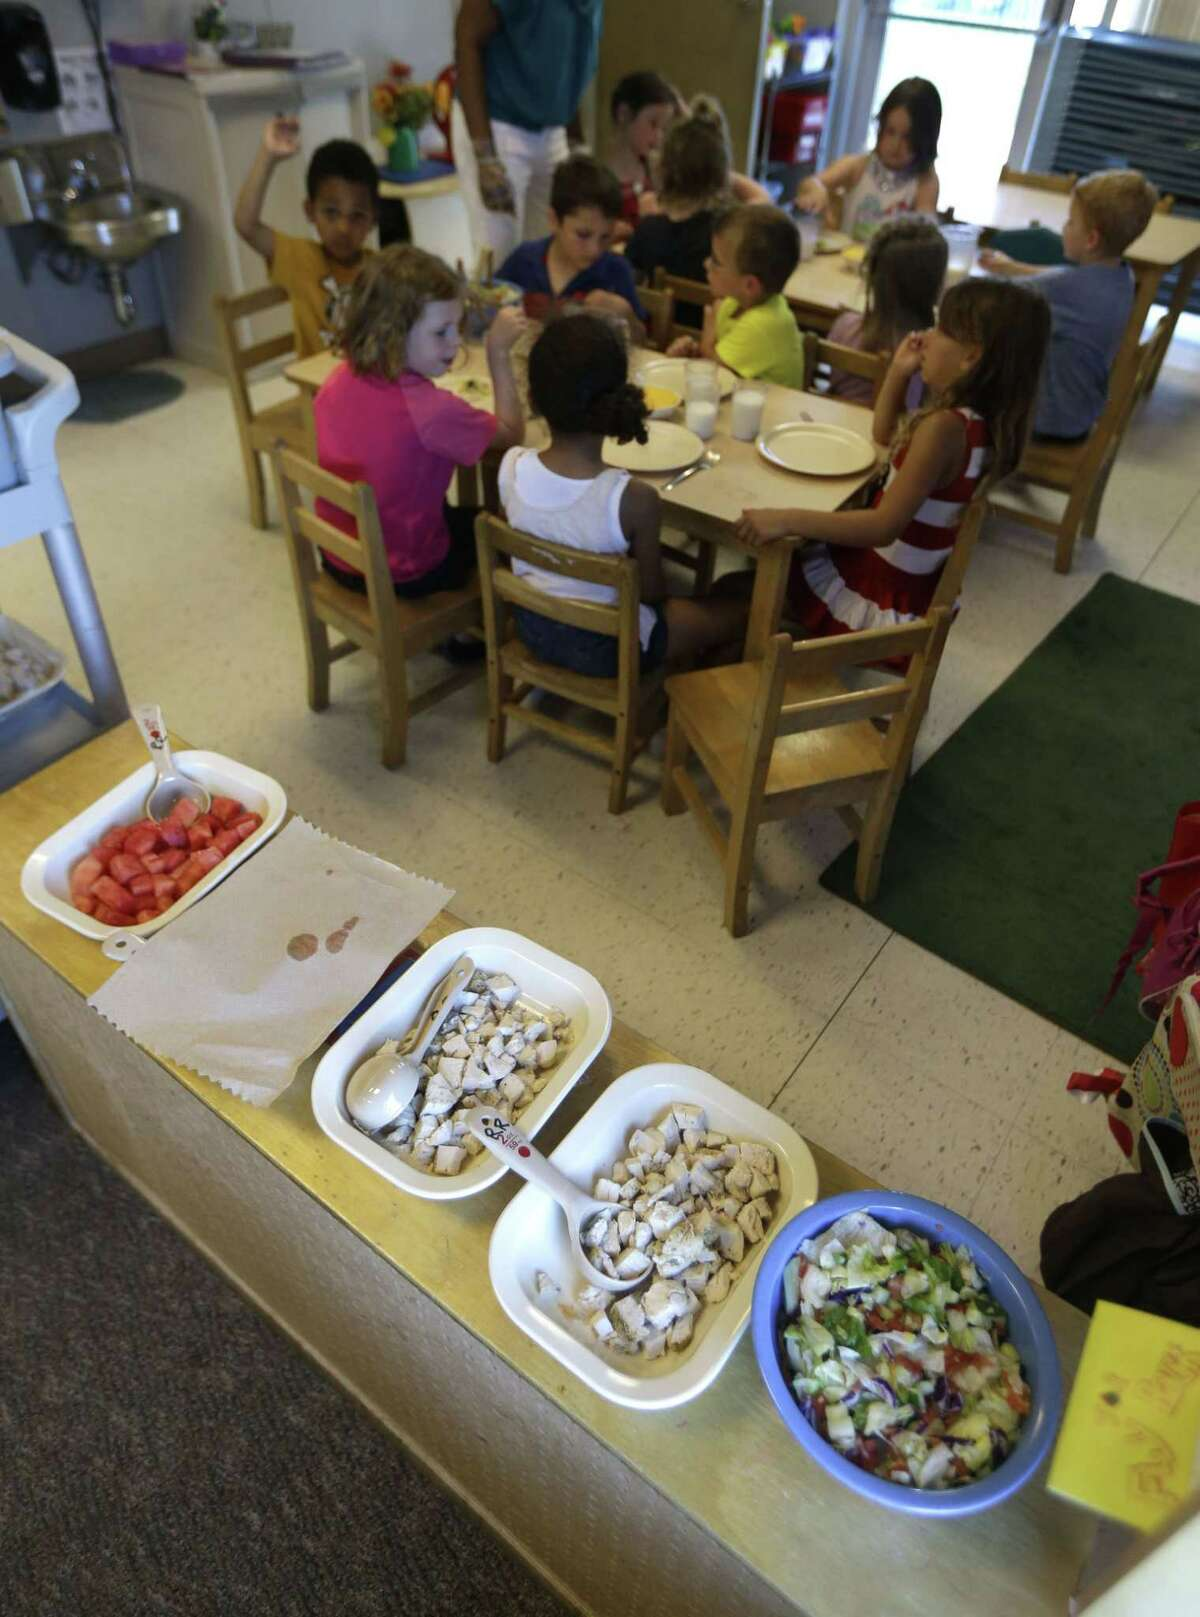 A family-style meals is served to a class of 4 and 5 year olds at the Olathe Family YMCA in Olathe, Kan., Wednesday, June 24, 2015. As early childhood teachers lament toddlers too large to fit in playground swings, officials are mulling changes designed to make meals served to millions of kids in day care healthier.